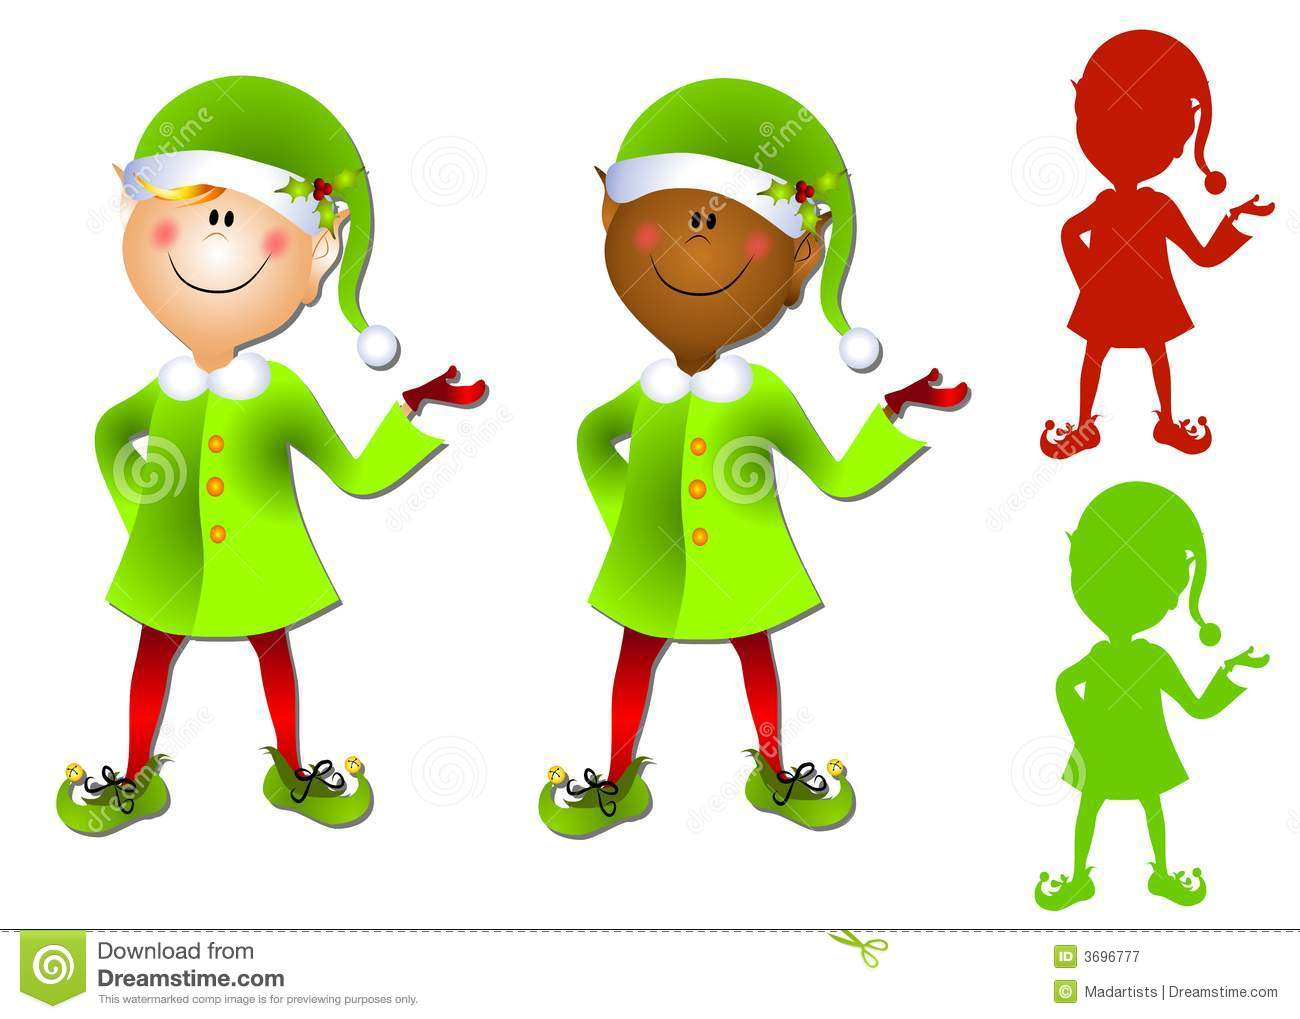 Search for similar clipart clip art royalty free stock Christmas Santa Elf Clip Art 3 Royalty Free Stock Photo - Image ... clip art royalty free stock